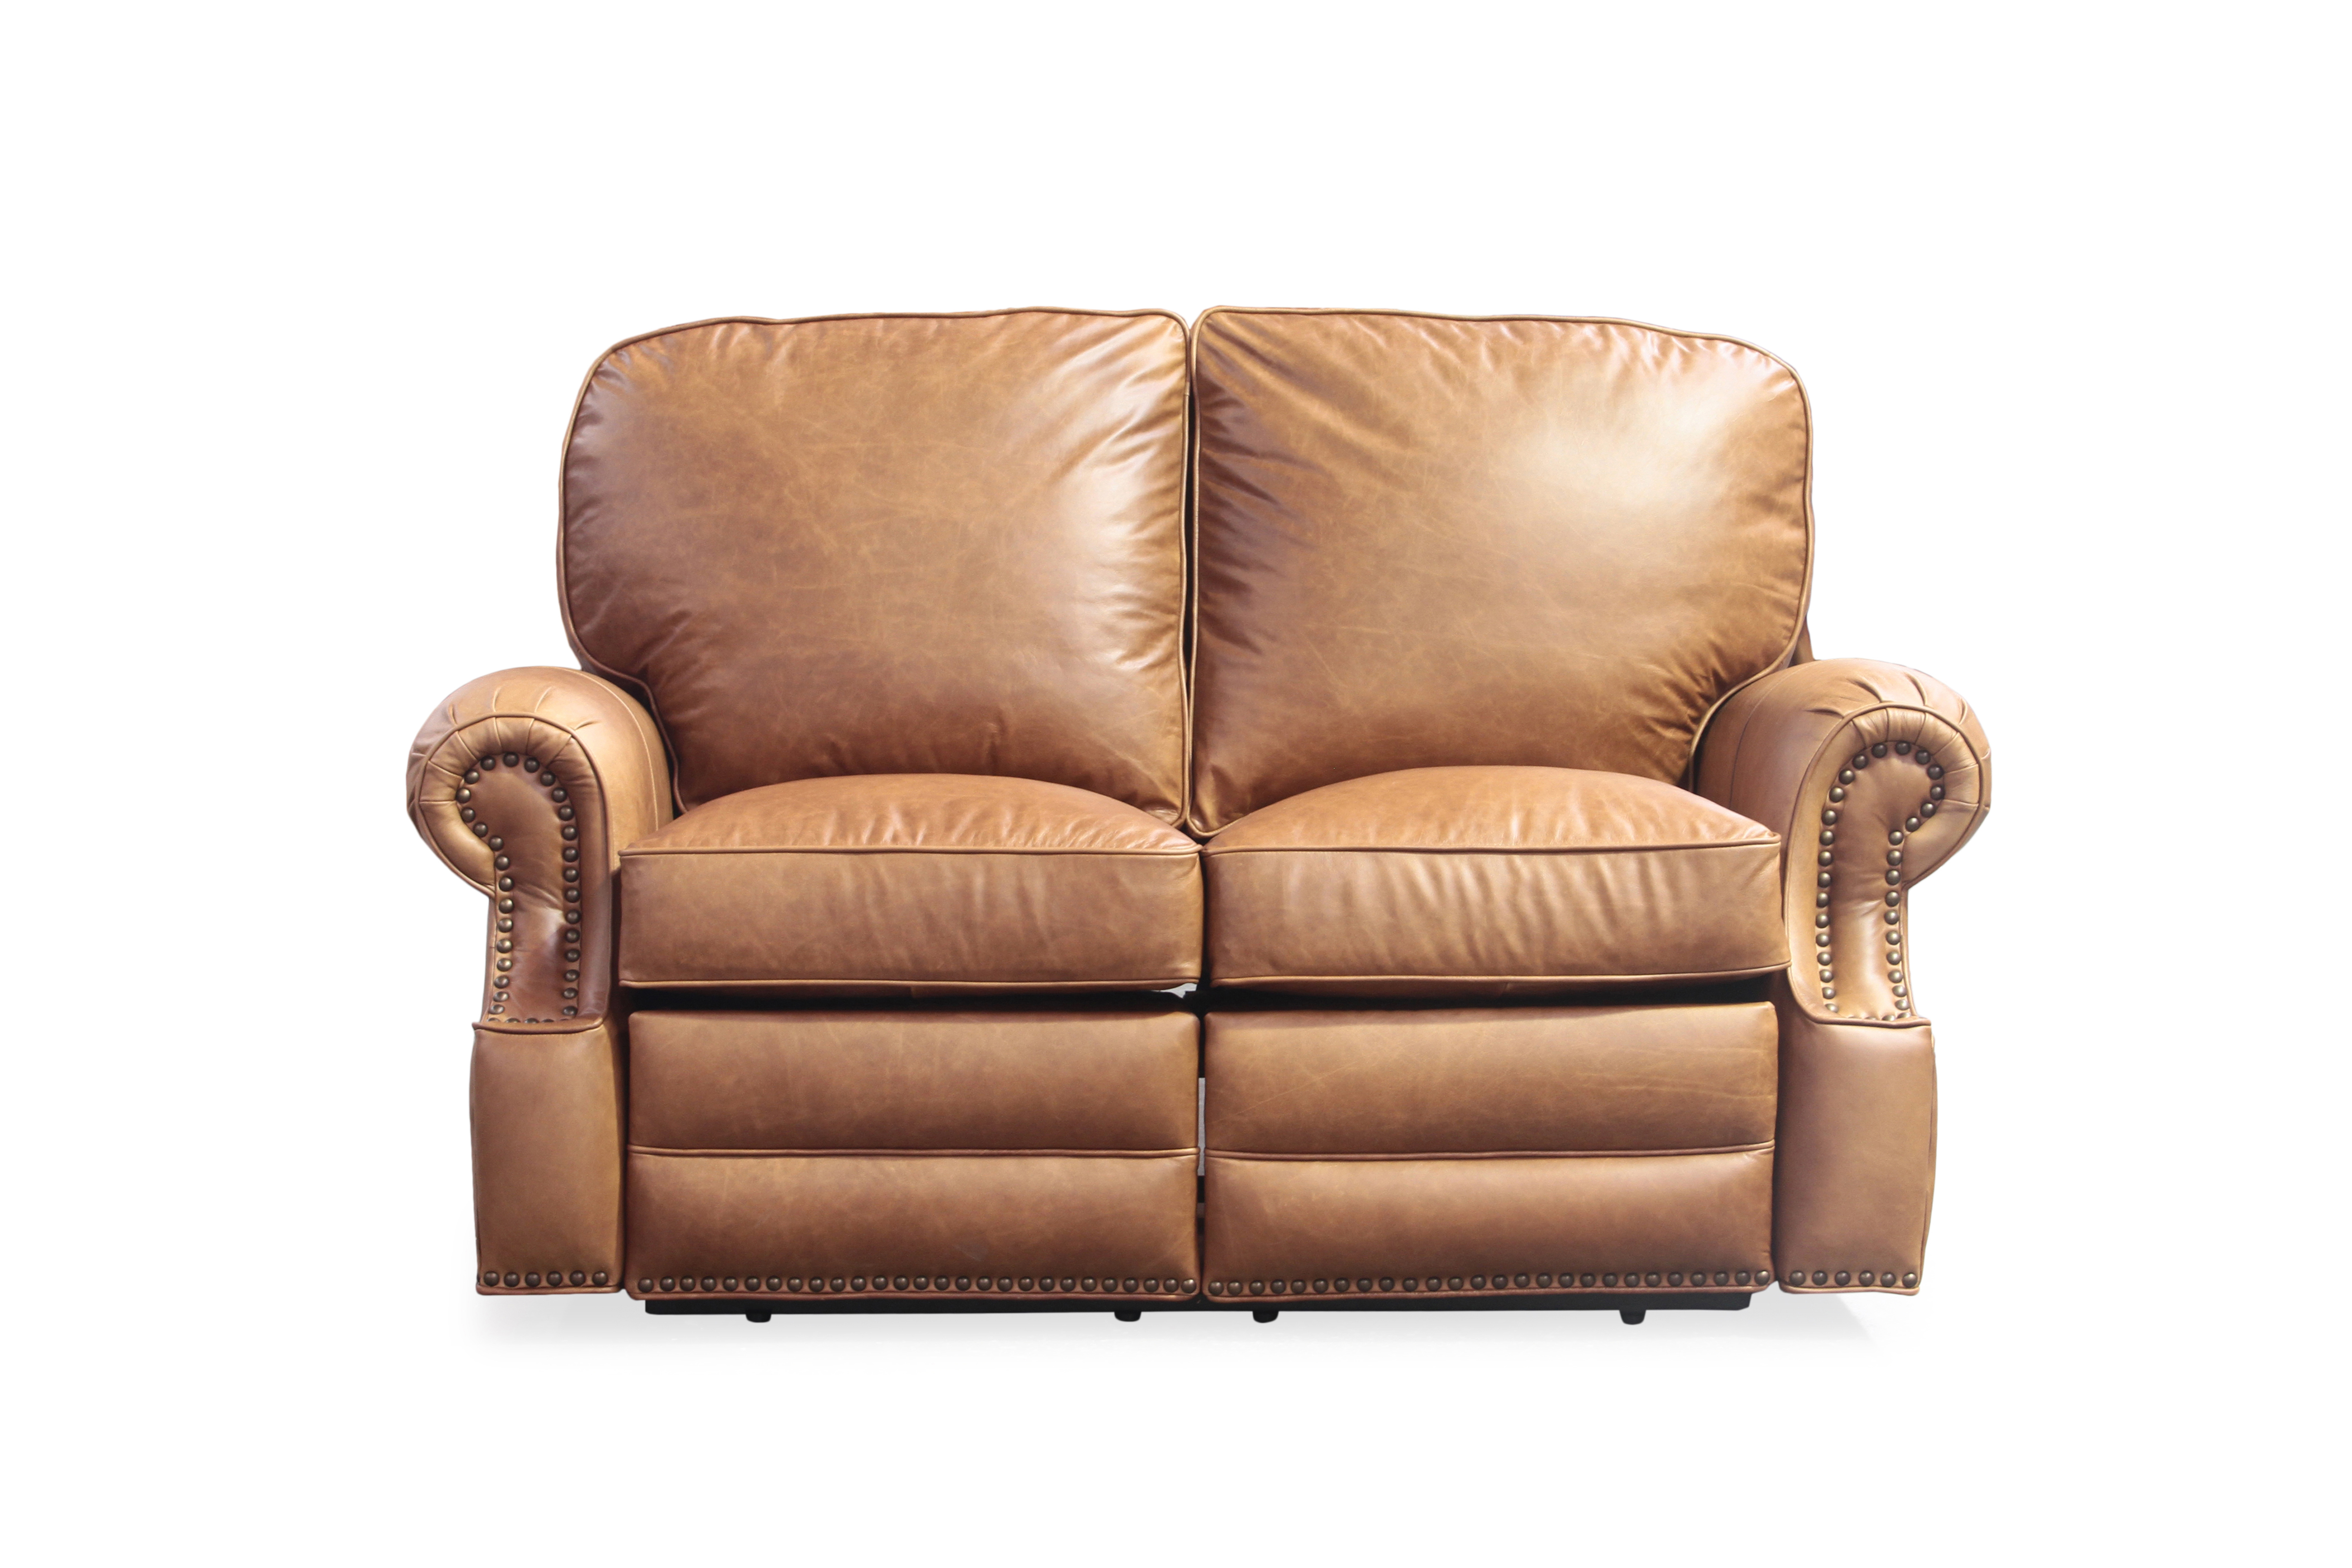 Sensational Longhorn Vintage Leather Reclining Sofa 35 4727 Sofas And Gamerscity Chair Design For Home Gamerscityorg